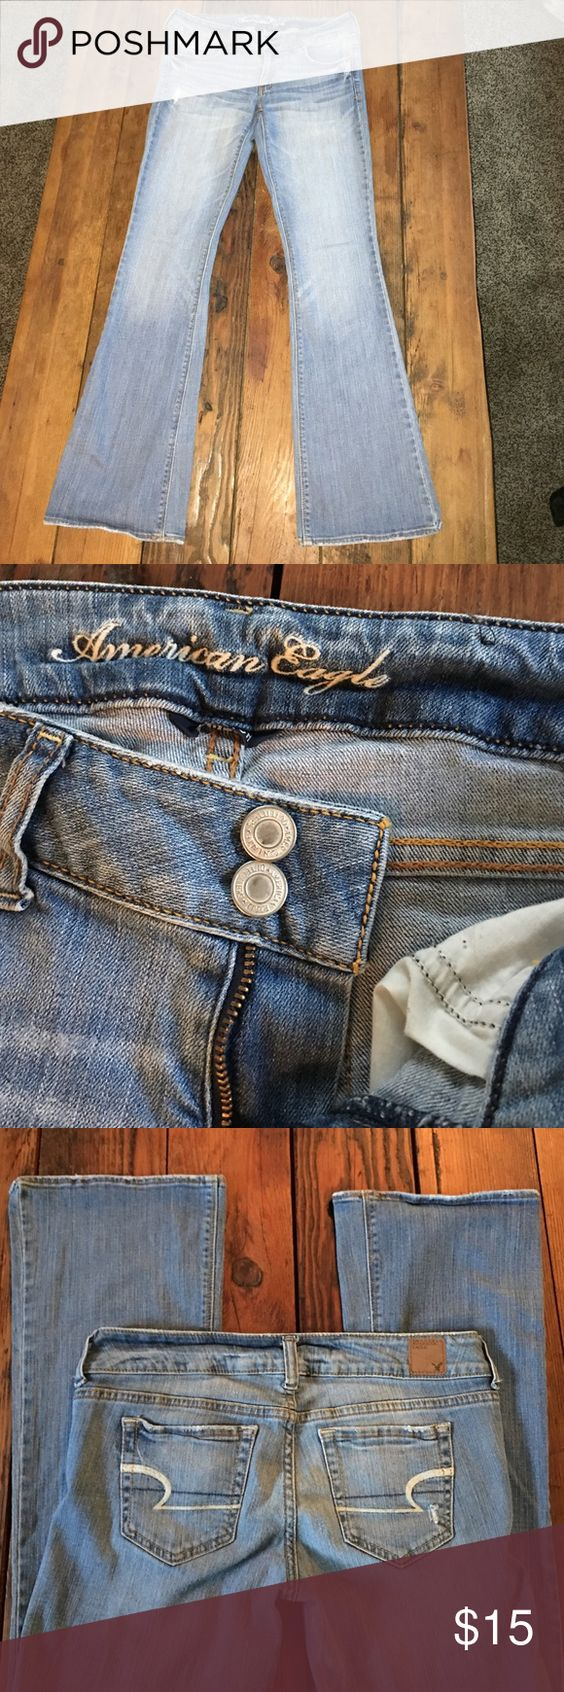 American Eagle Jeans Size 6 Regular jeans!! One of my favorite pair! Super comfy and cute. American Eagle Outfitters Jeans Boot Cut